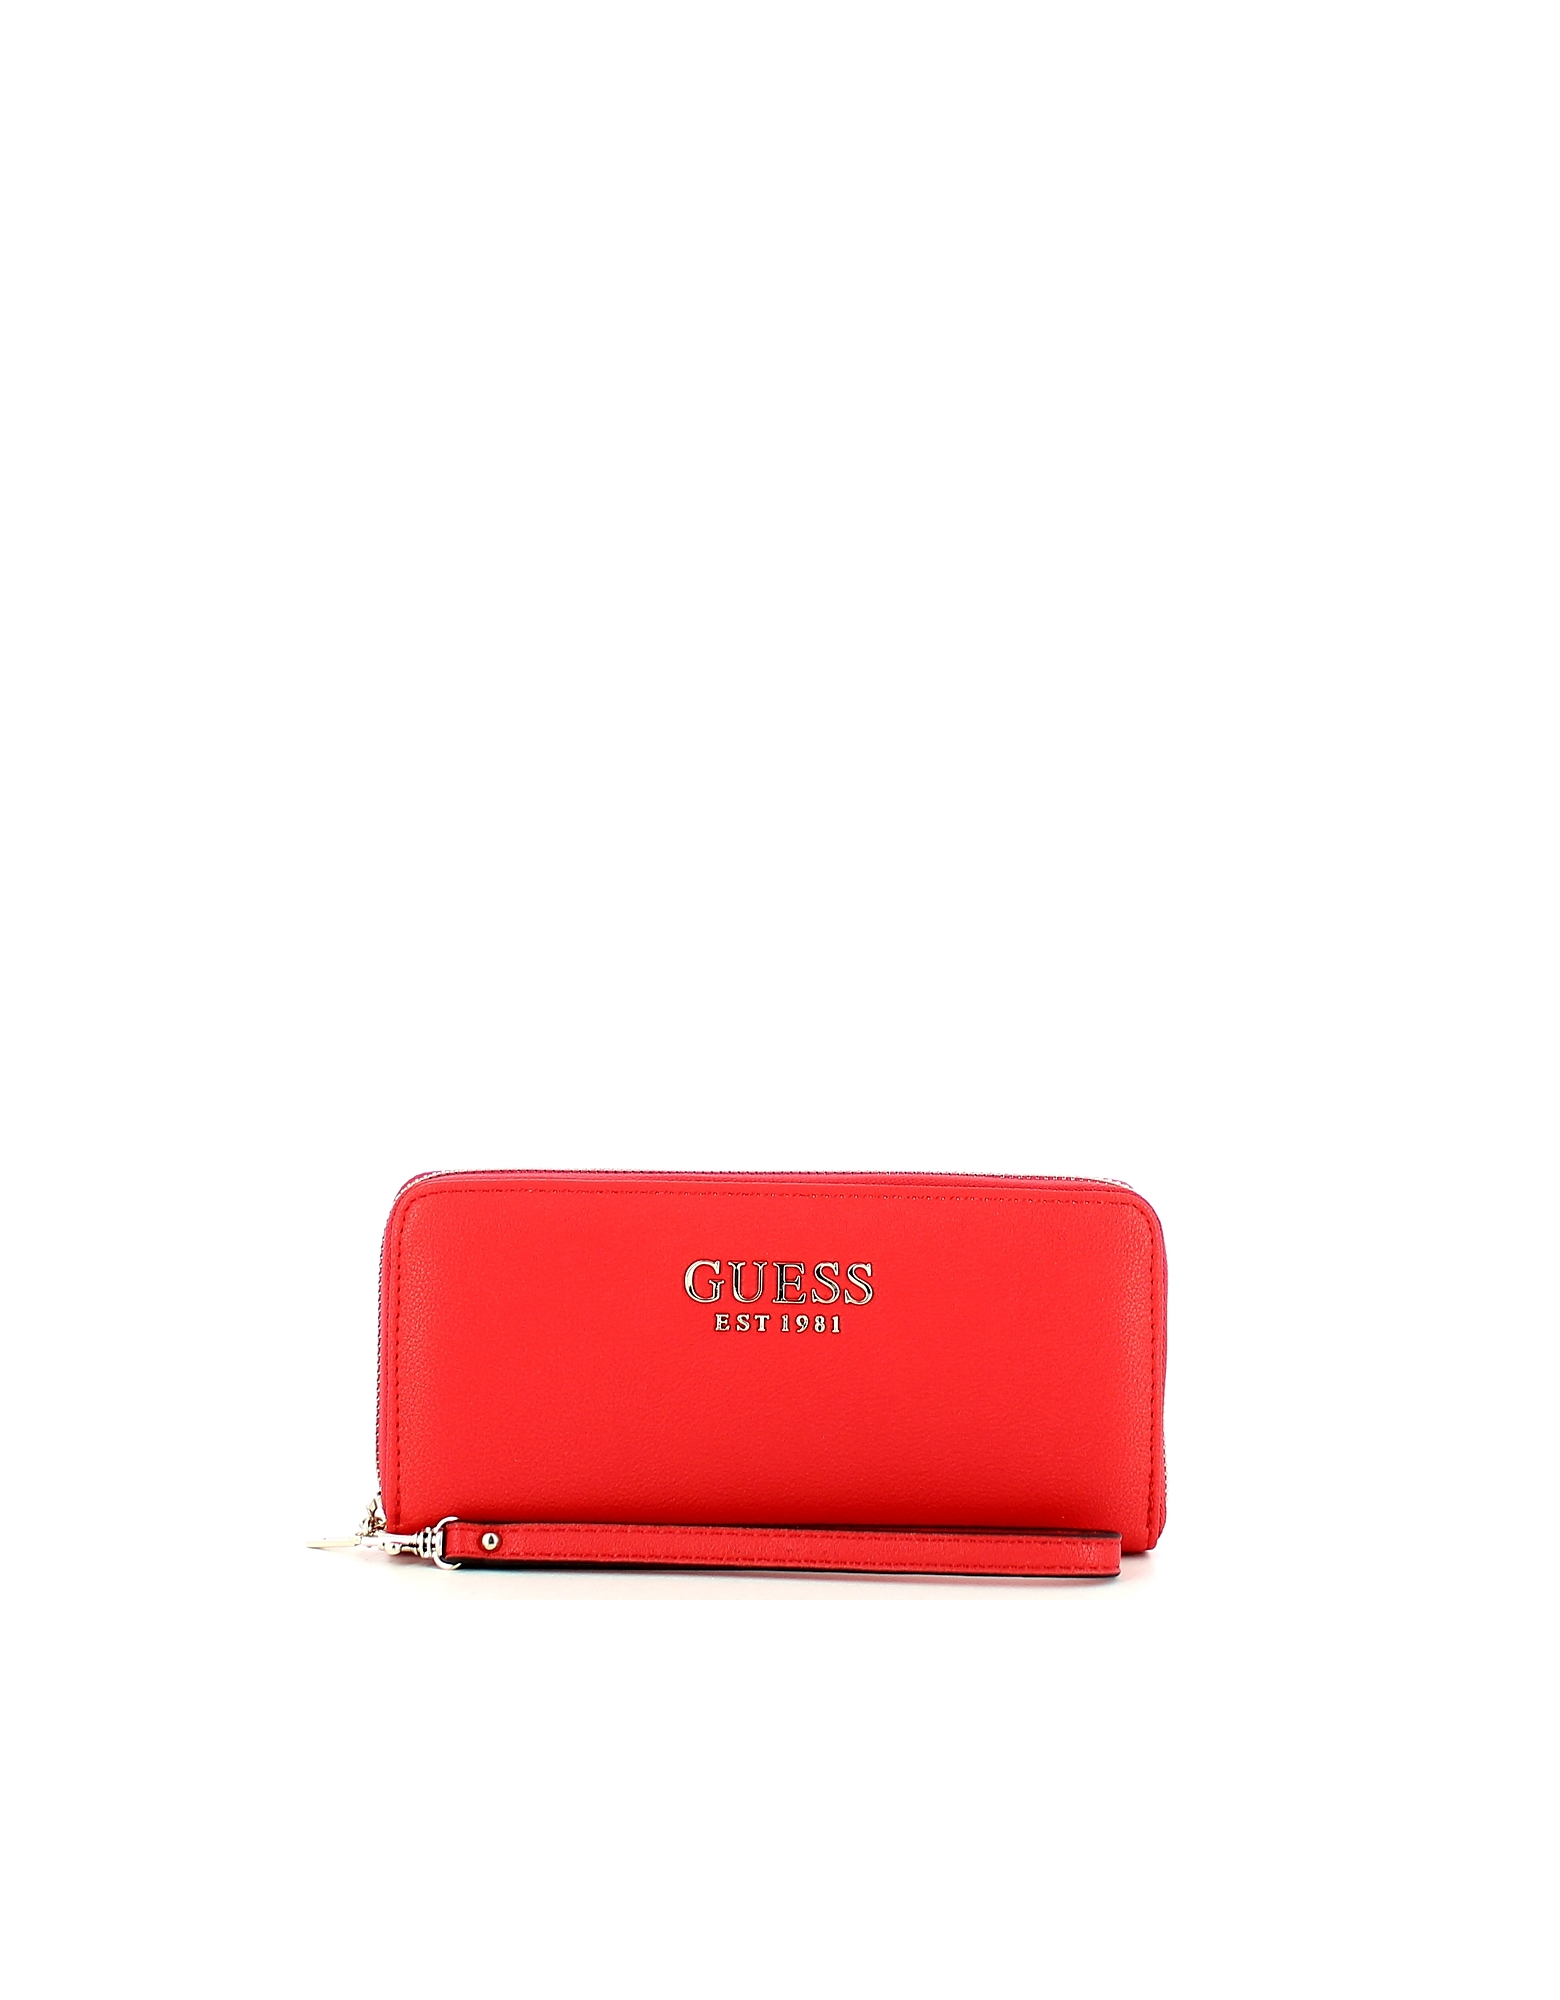 Guess Designer Wallets, Women's Red Wallet